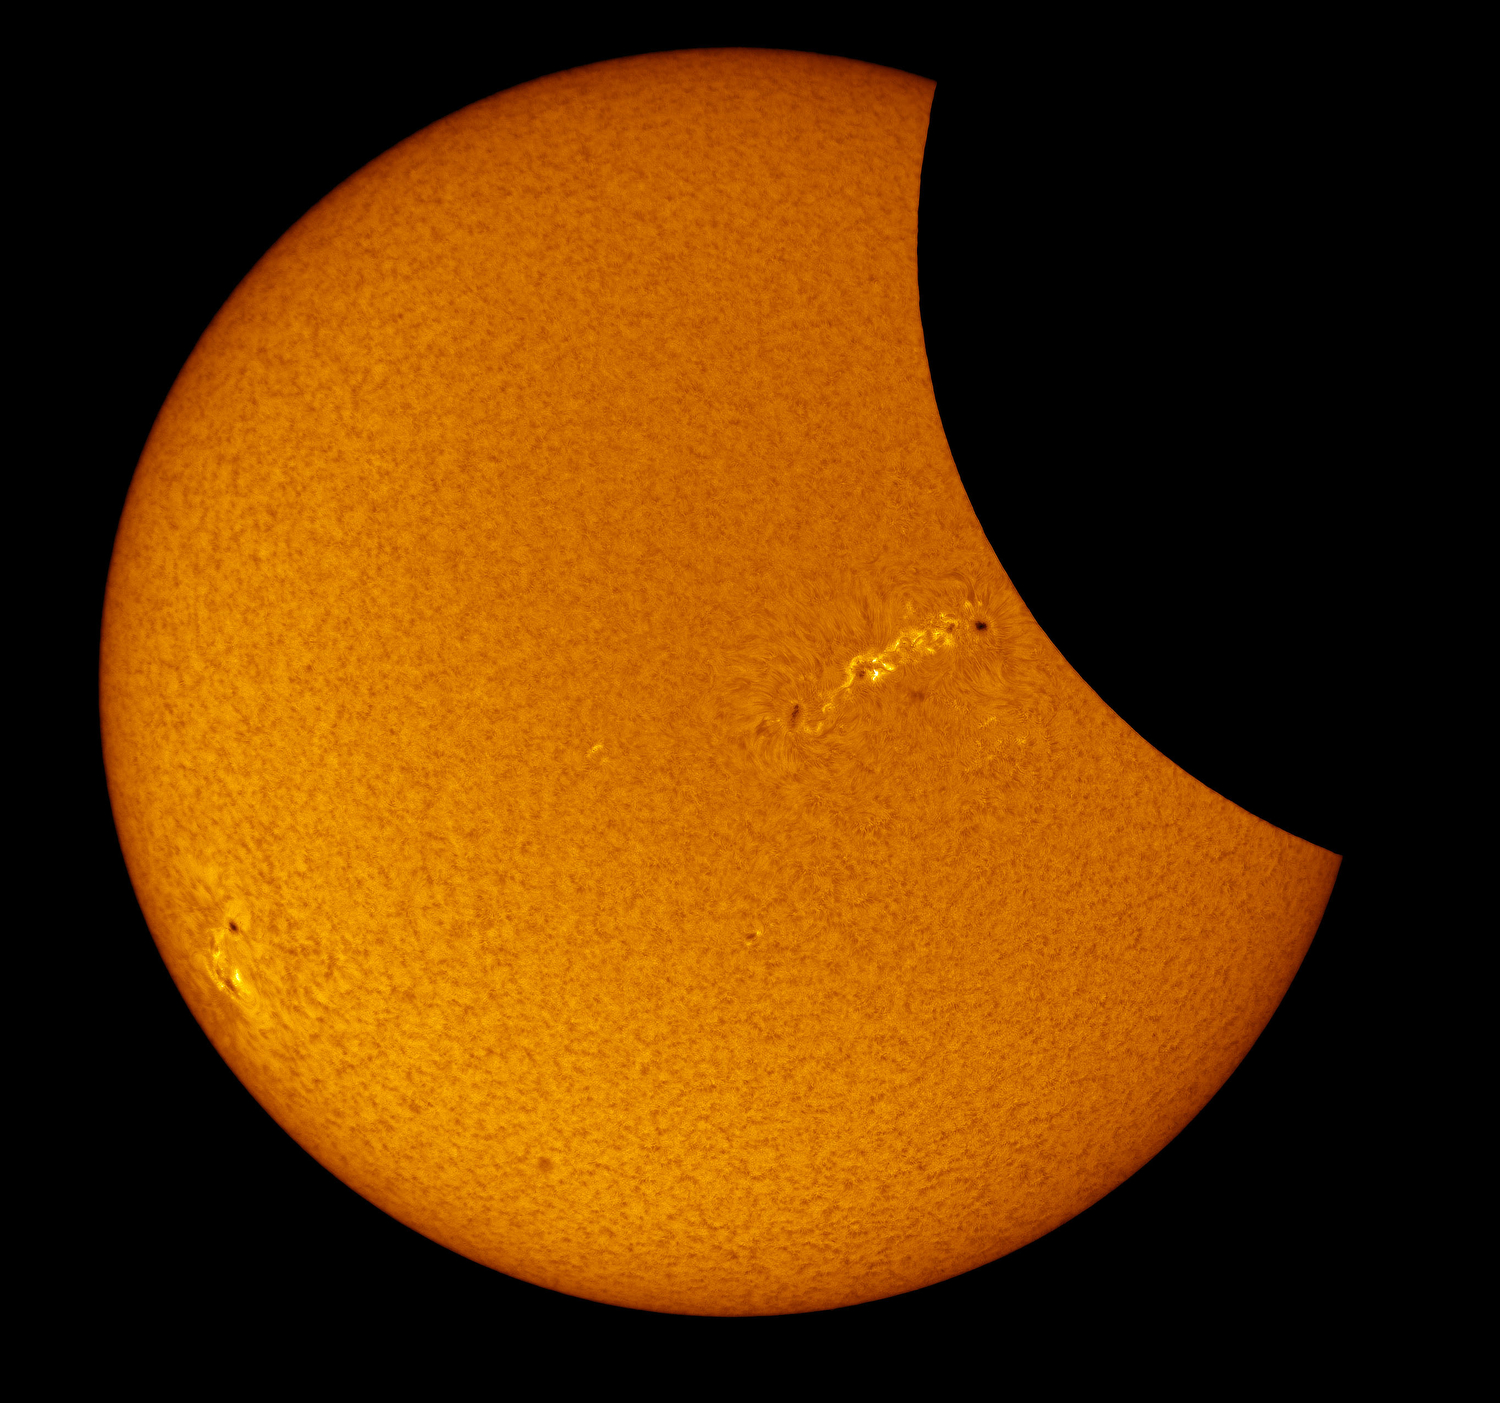 In this image in Hydrogen-alpha light derived from video and in false color, sunspot activity is clearly visible as the moon partially obscures the sun during the total solar eclipse near Mitchell, OR on Monday, August 21, 2017.